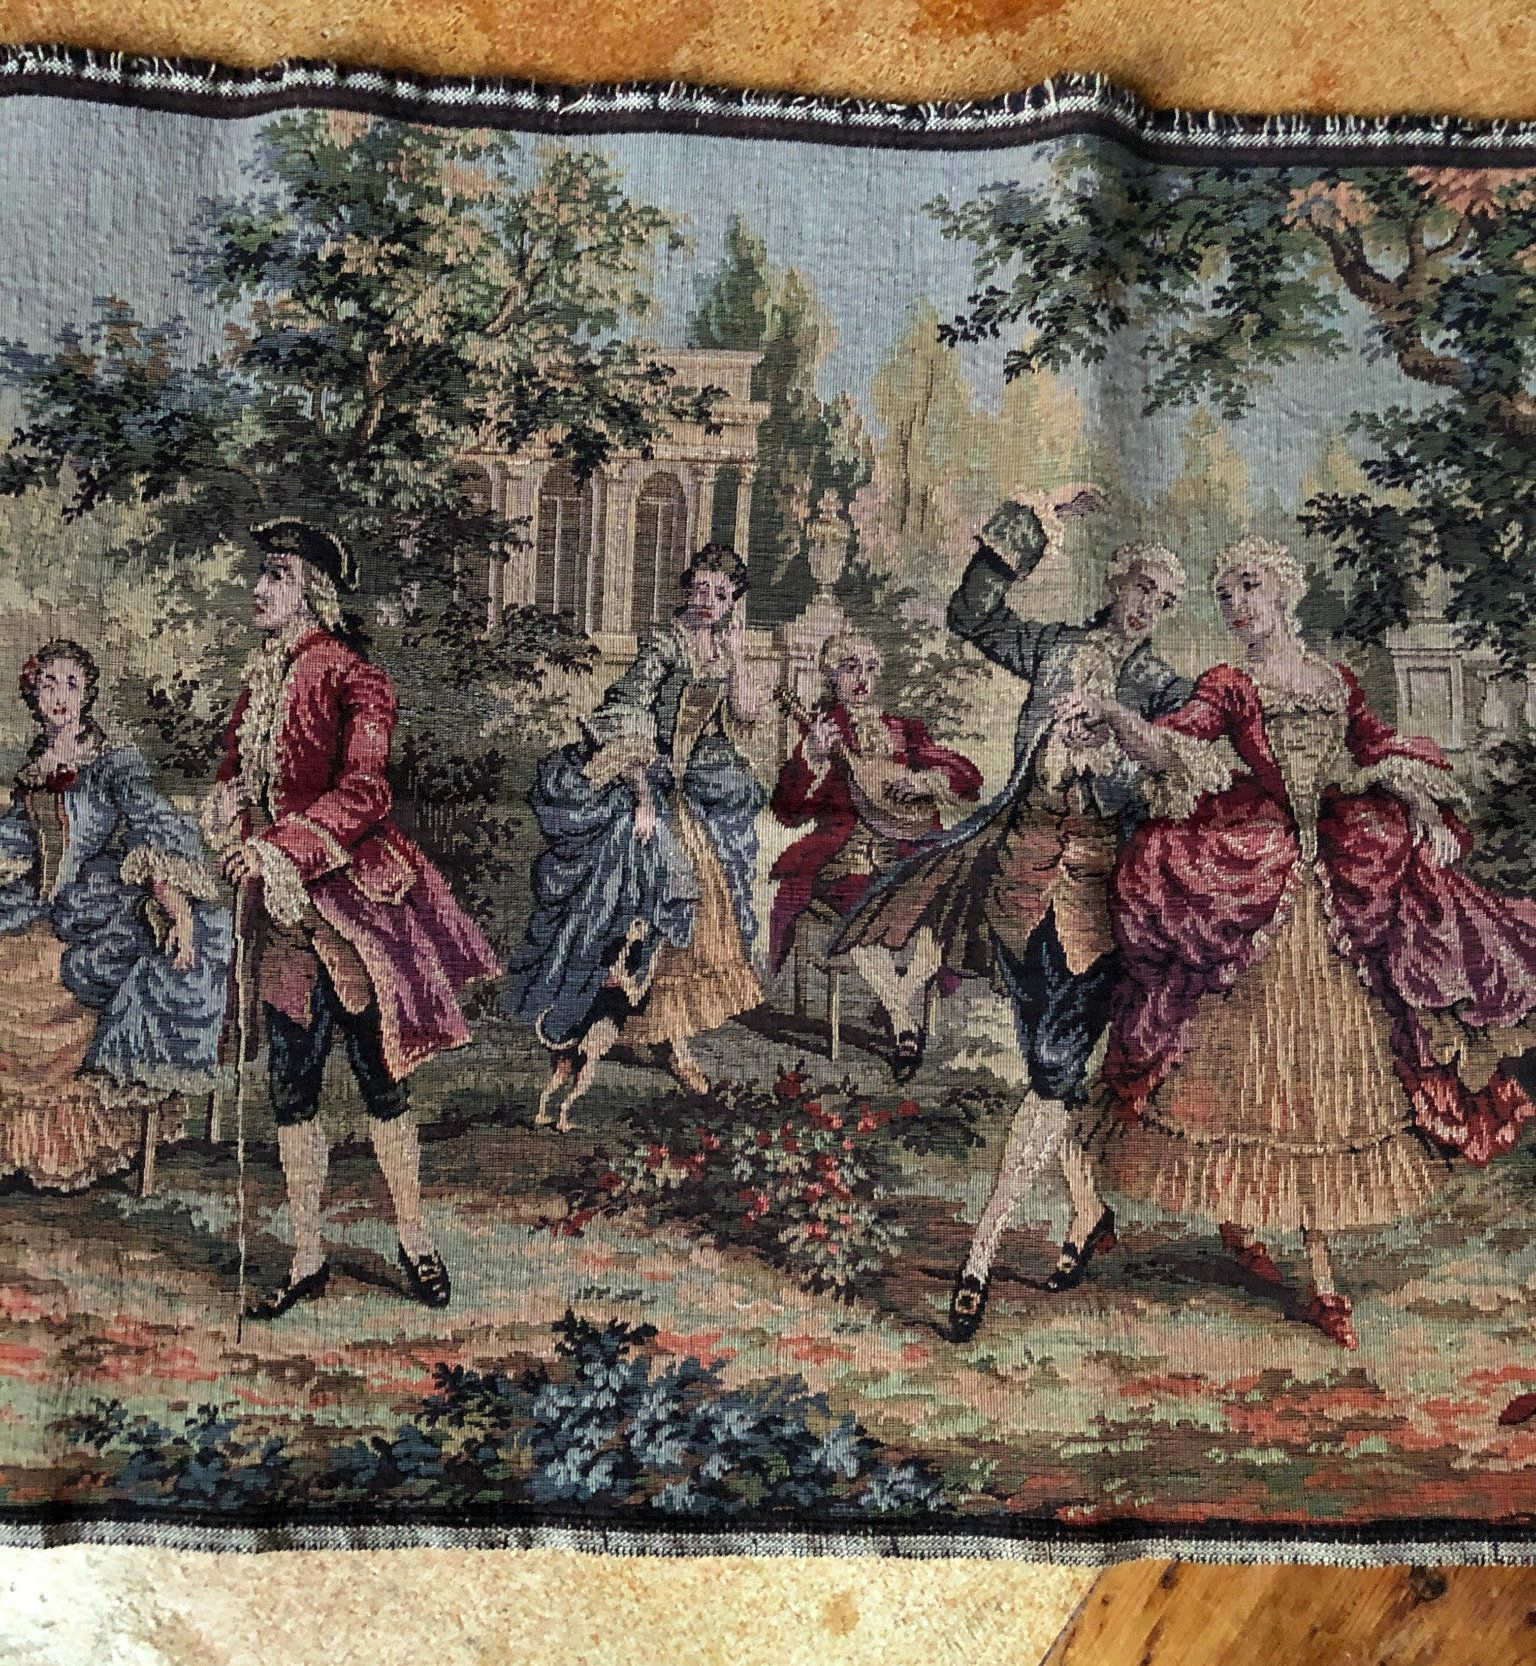 Famous Blended Fabric Italian Wall Hangings Regarding Antique Belgium Tapestry French Colonial Scene Romantic (View 11 of 20)